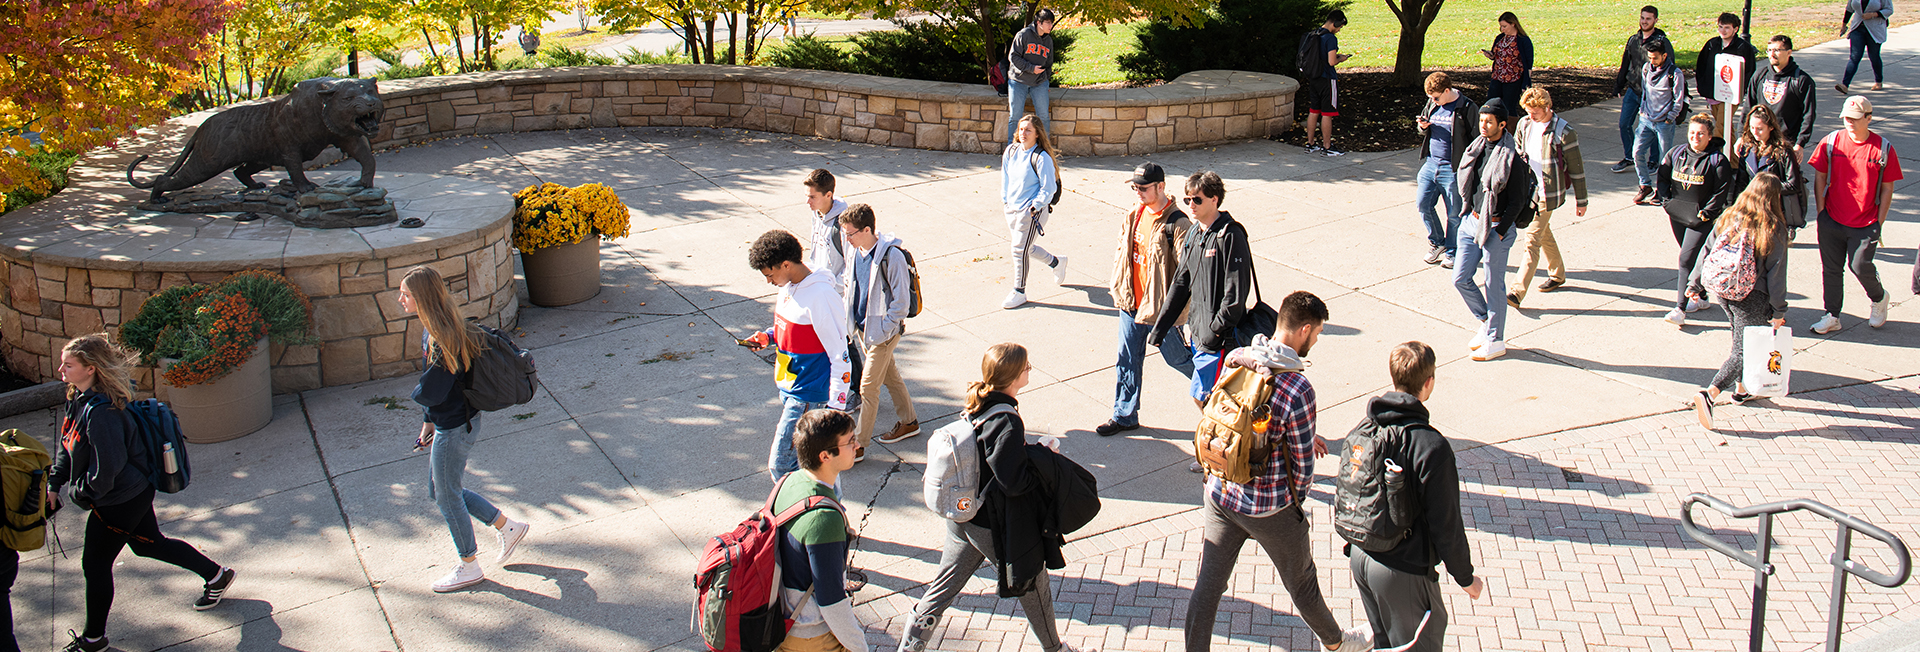 students walking down quarter mile